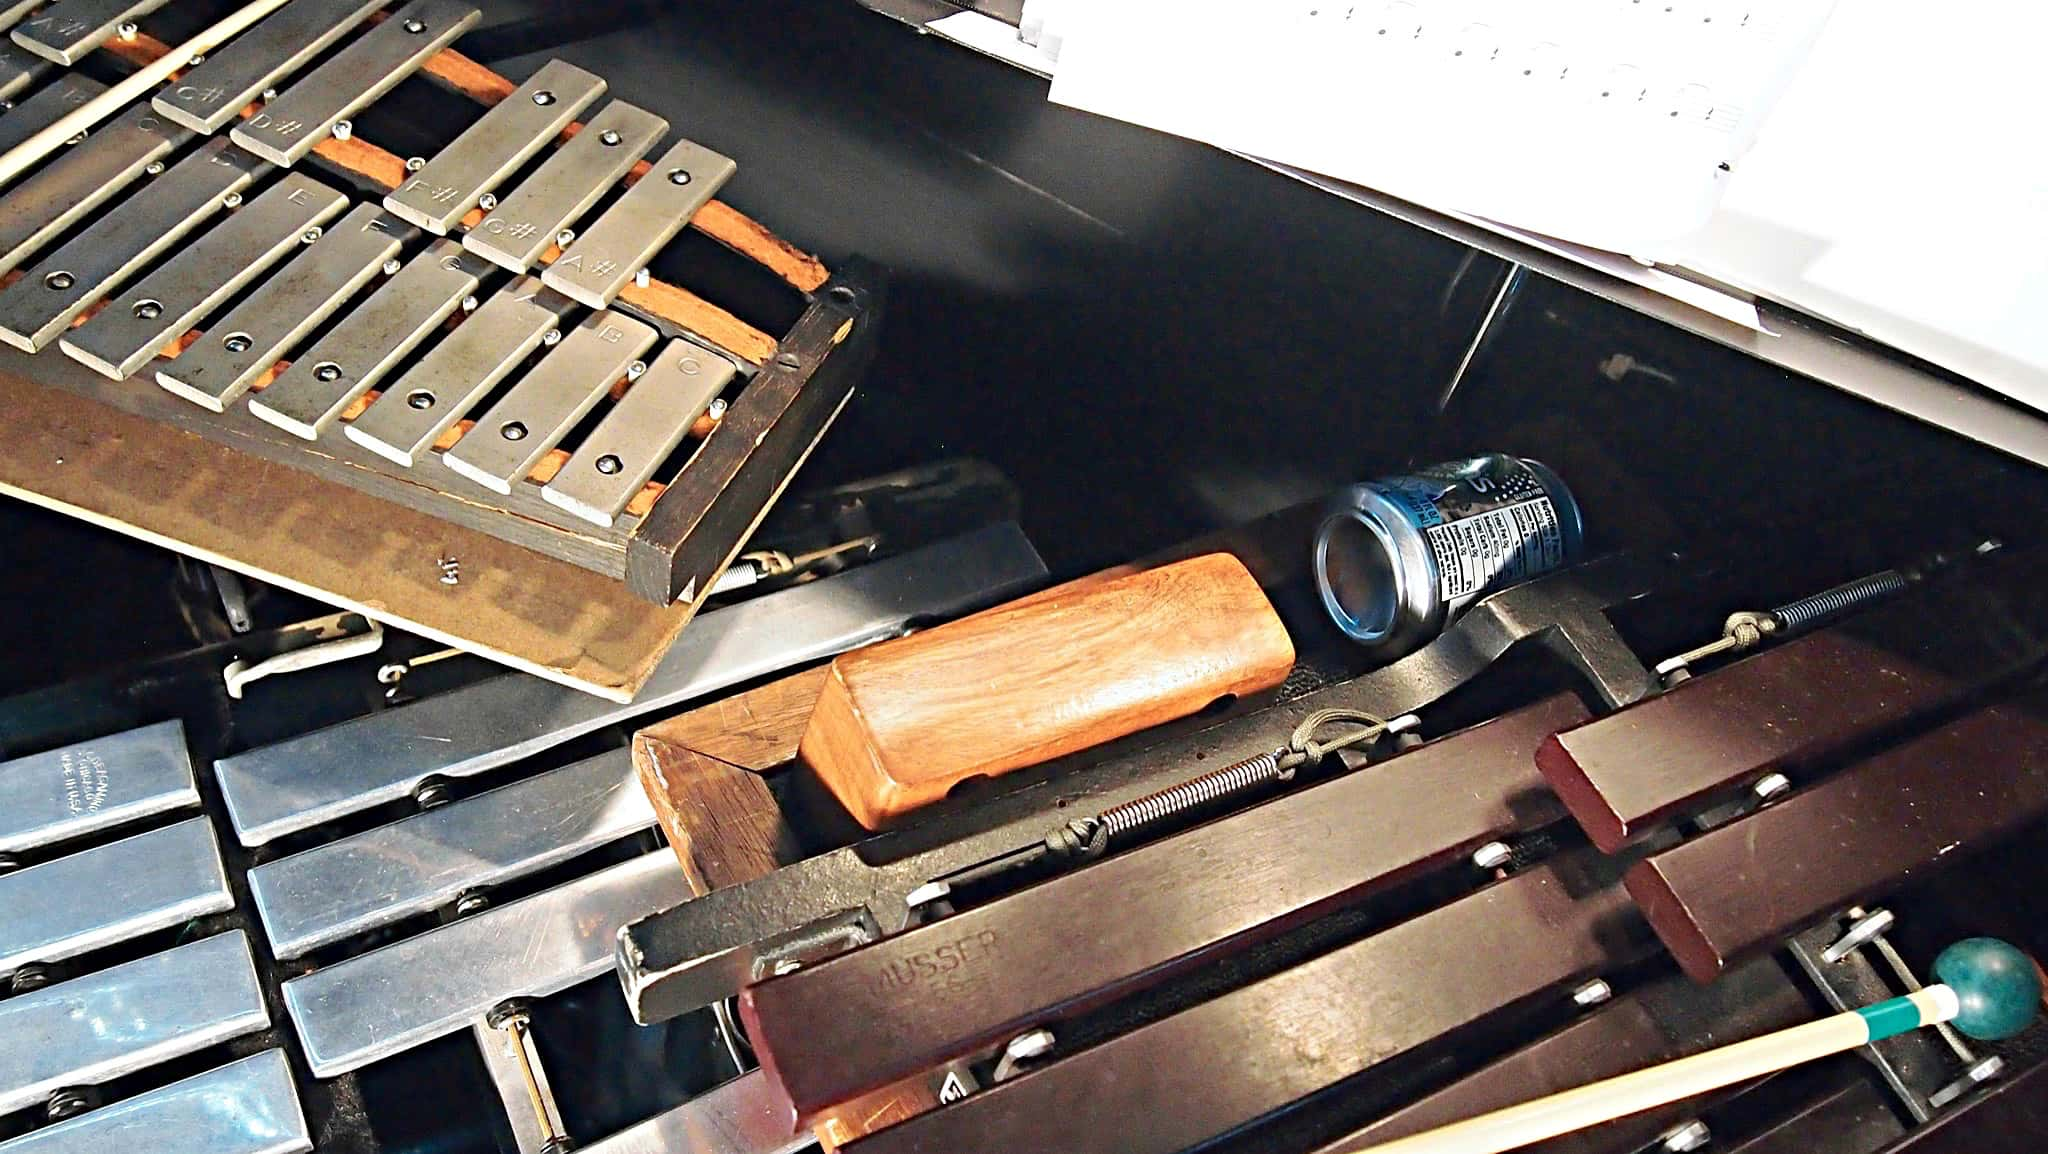 Paul Hansen's percussion setup for How to Succeed in Business Without Really Trying at the 5th Avenue Theatre in Seattle, Washington.